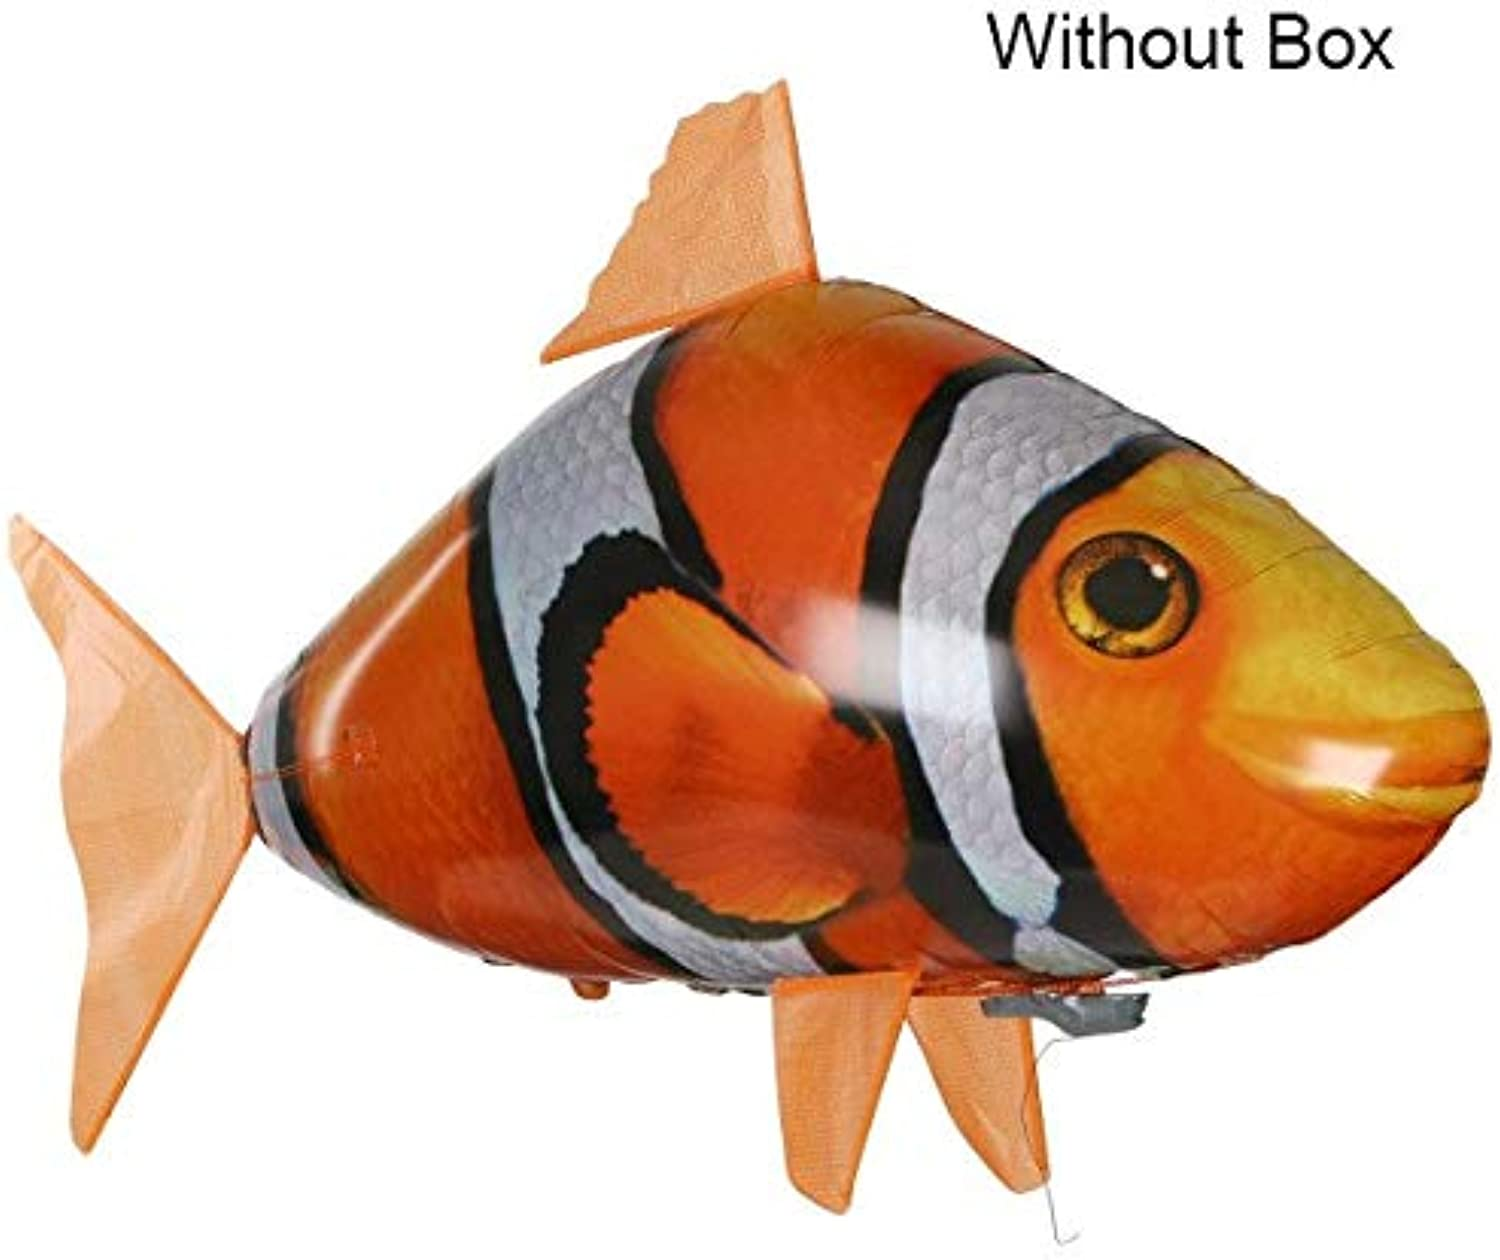 Generic Remote Control Shark Toys Air Swimming Fish Infrared RC Flying Air Balloons Nemo Clown Fish Kids Toys Gifts Party Decoration Toy Fish No Box